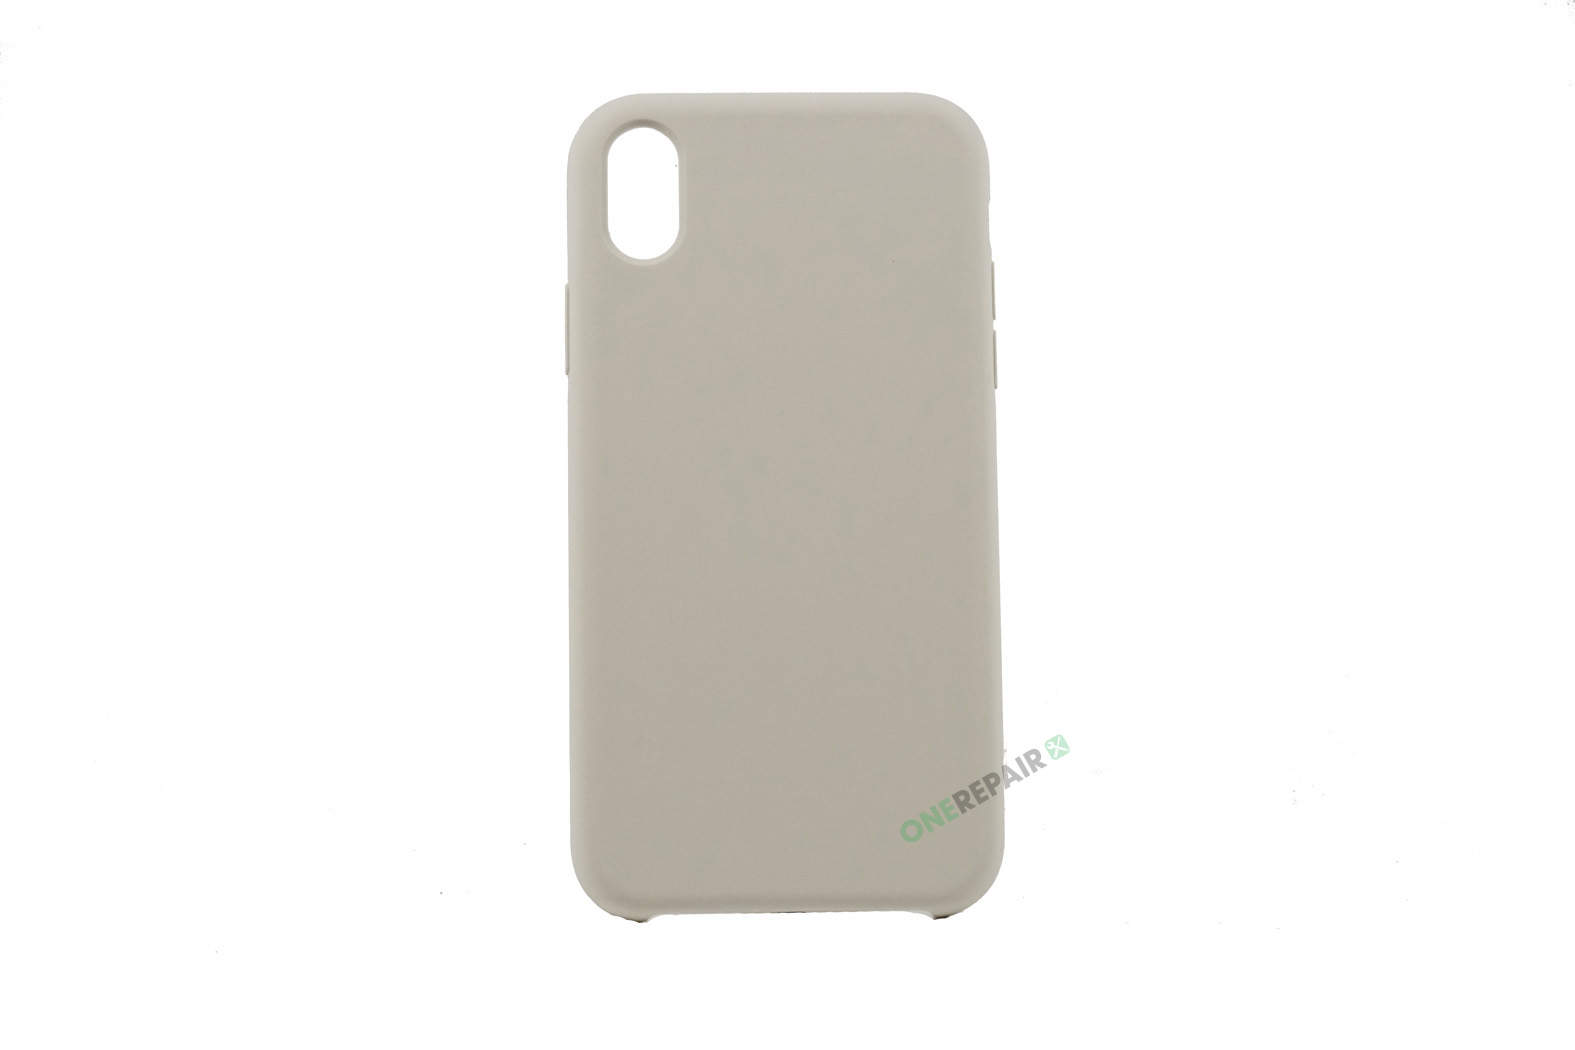 352057_iPhone_XR_Silikonecover_Cover_Graa_OneRepair_00001